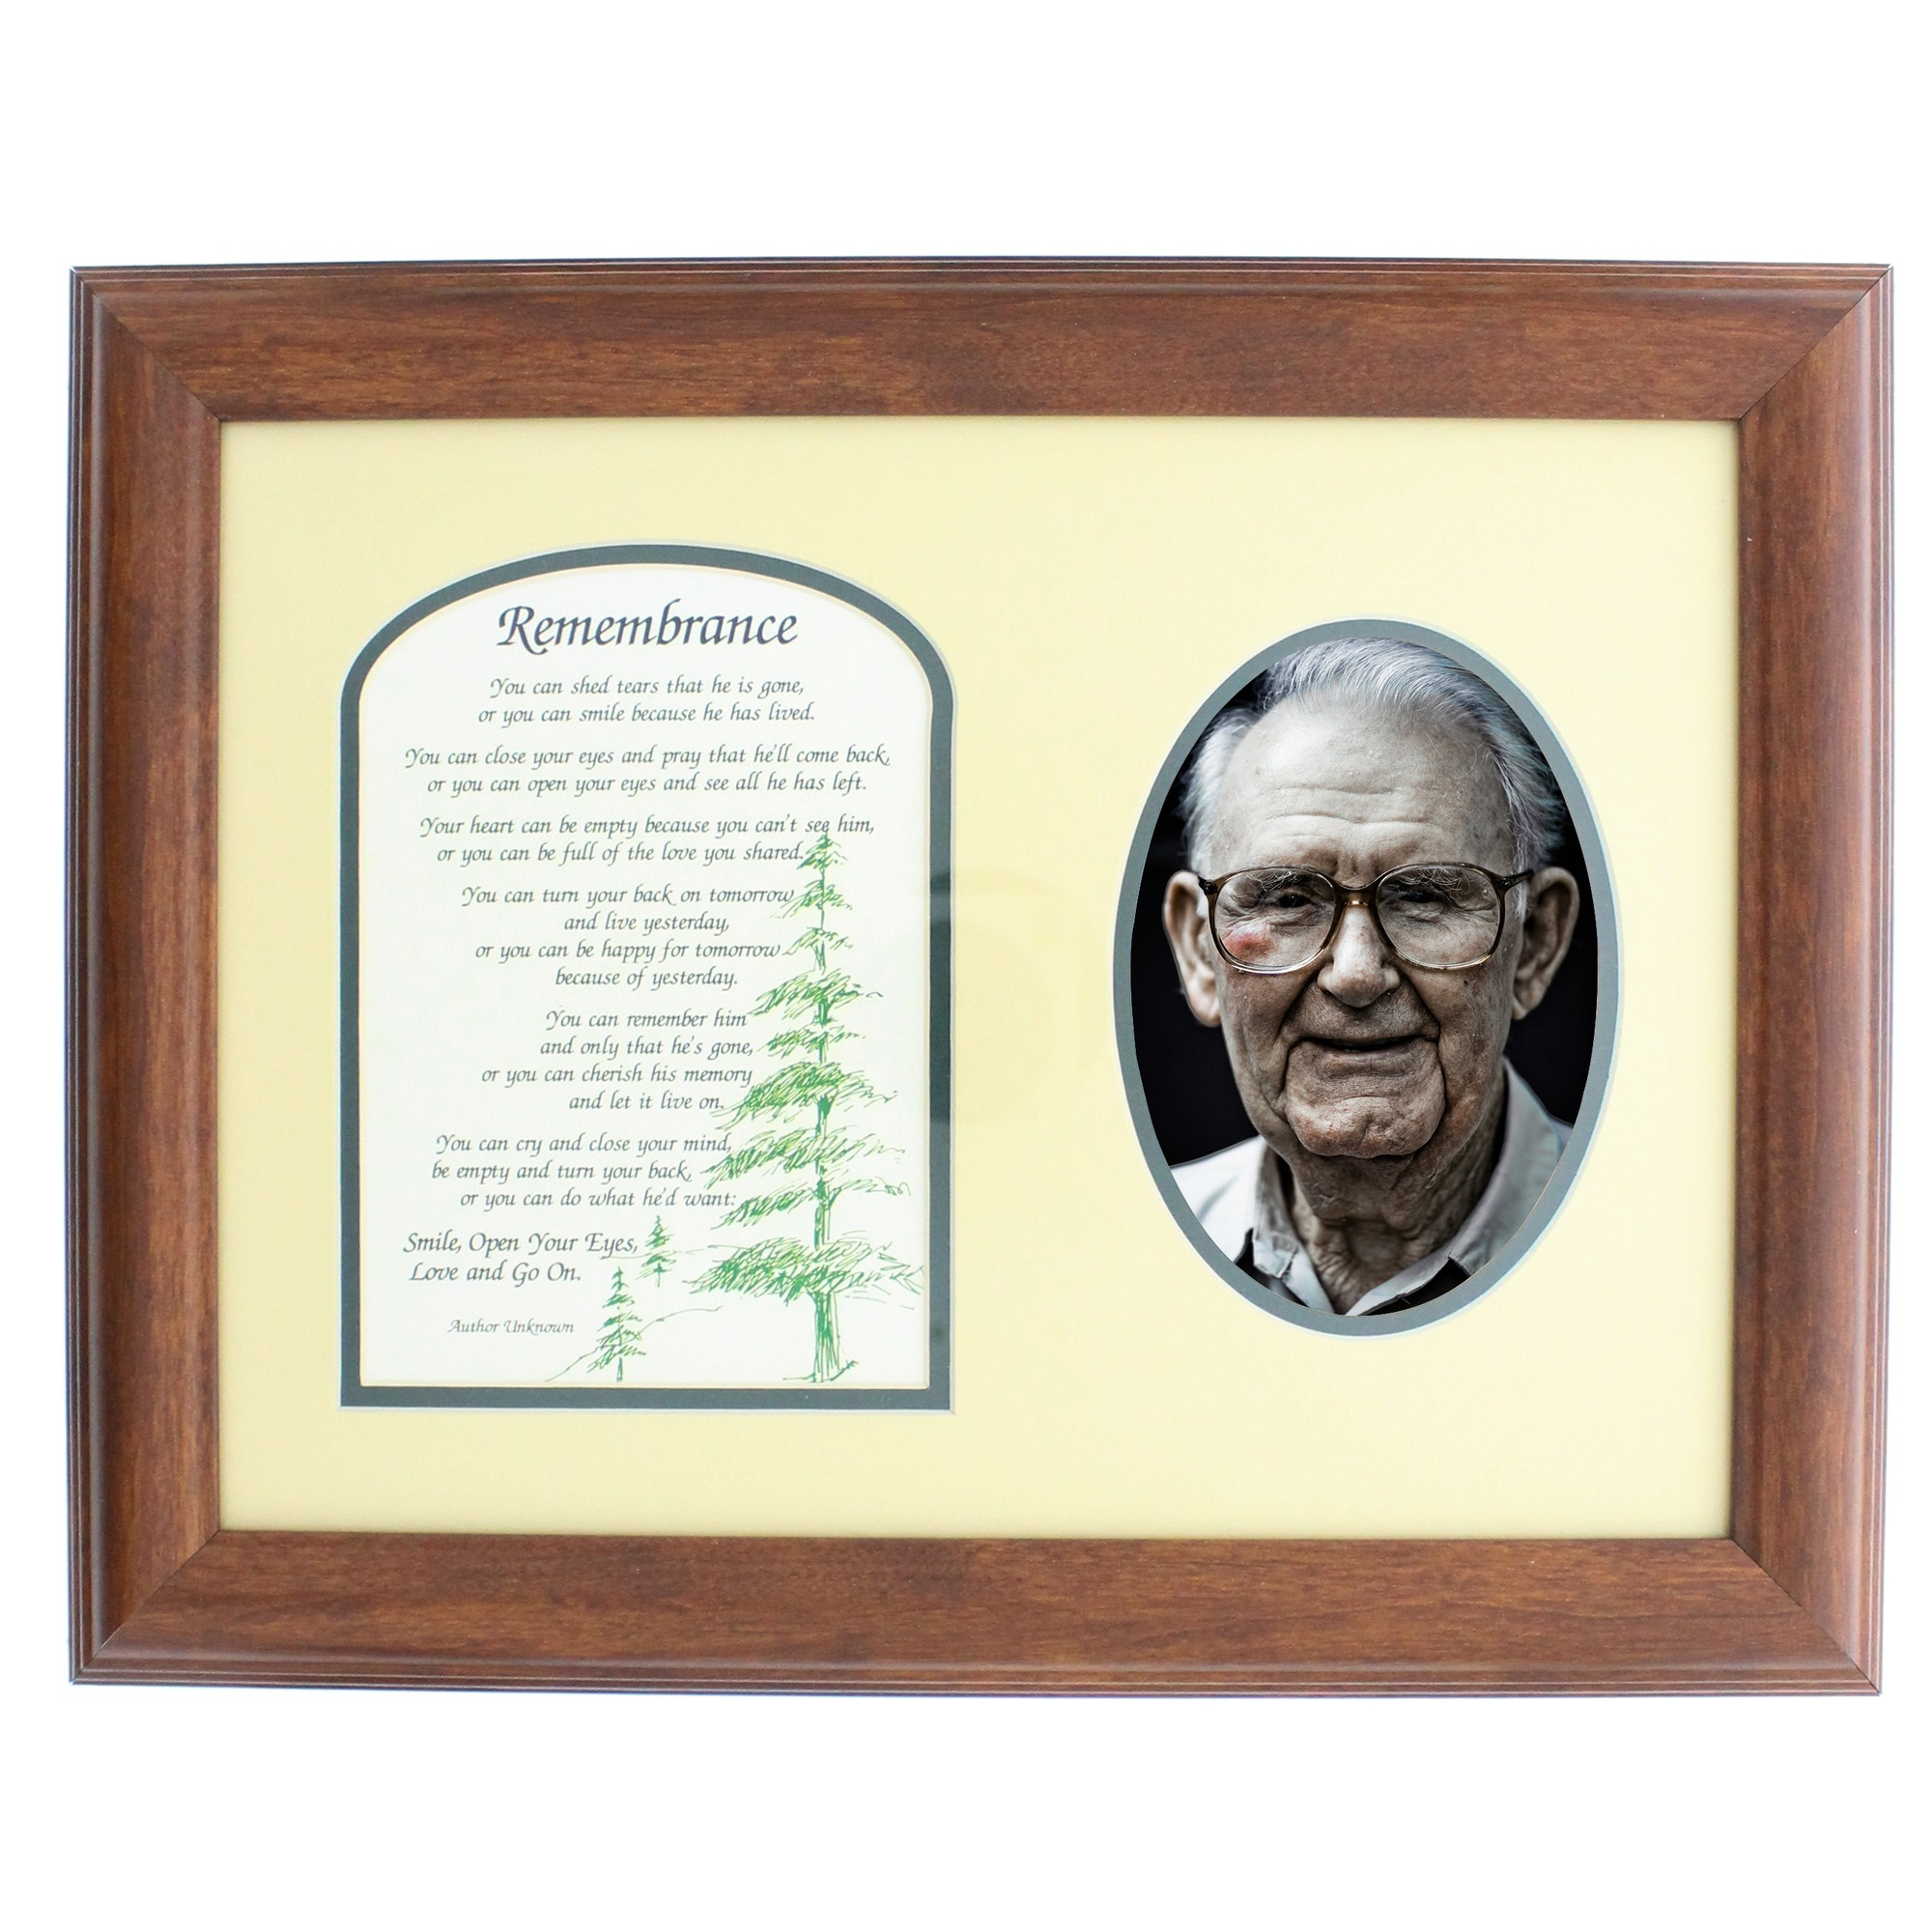 Remembrance Photo Memorial Frame - Male - 11 x 14 | The Catholic Company